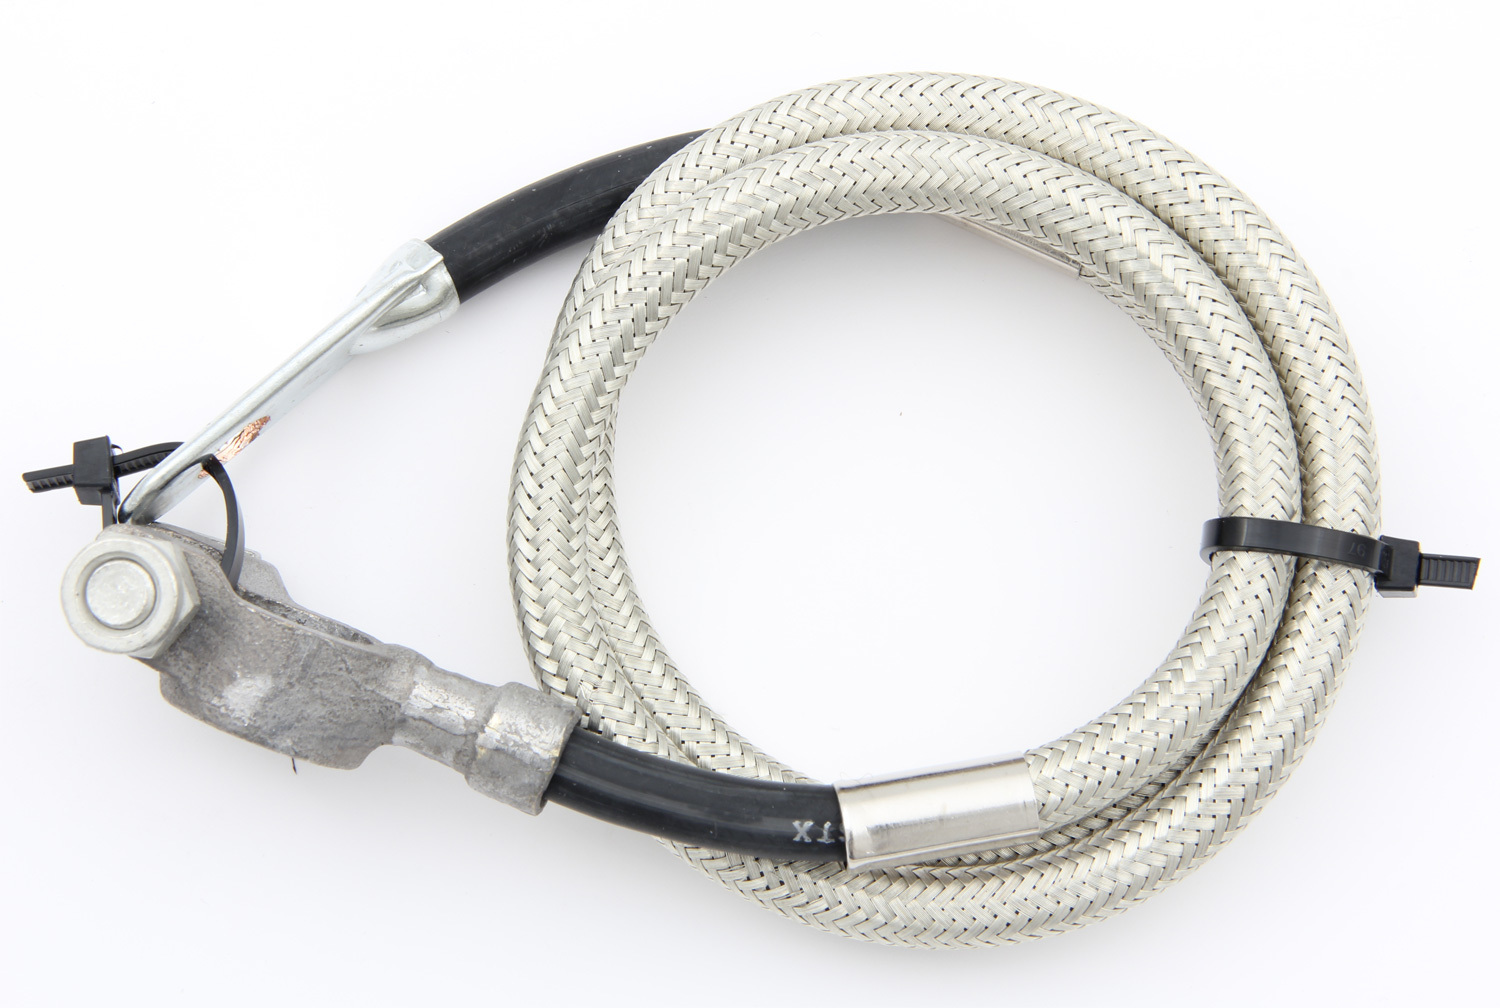 Taylor 20048 Battery Cable, Diamondback, 4 Gauge, 48 in, Crimped Terminals, Top Post Terminal, Eyelet Terminal, Copper, Braided Stainless, Each